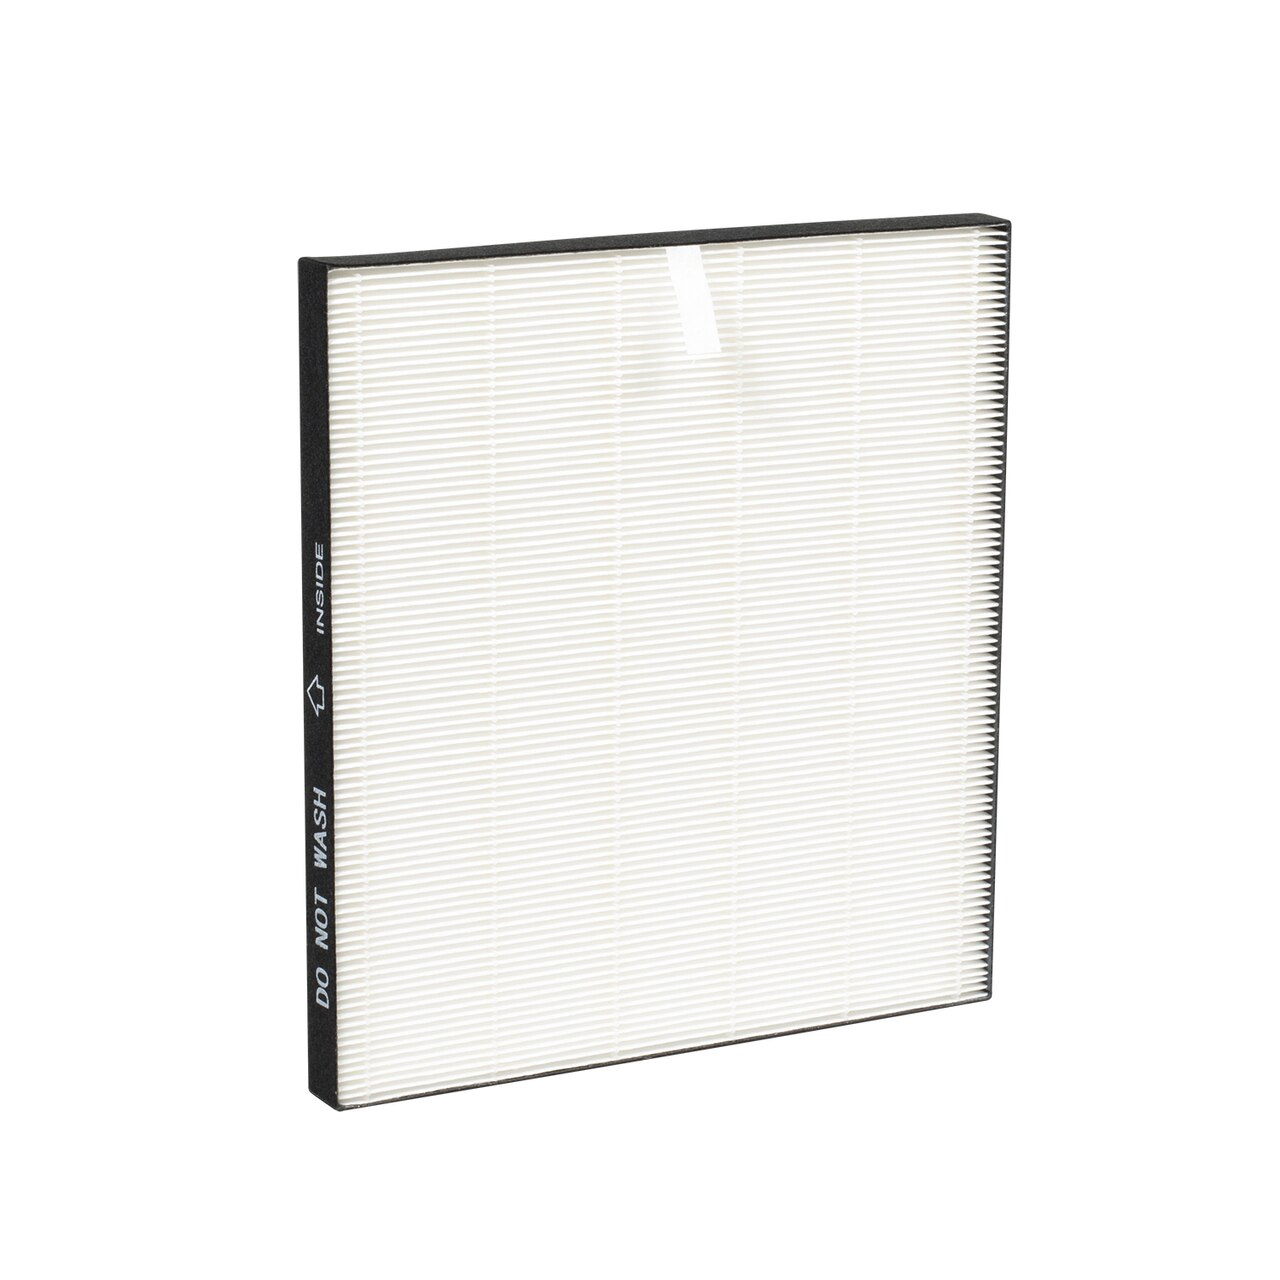 FZF30HFU True HEPA Replacement Filter- left angle view